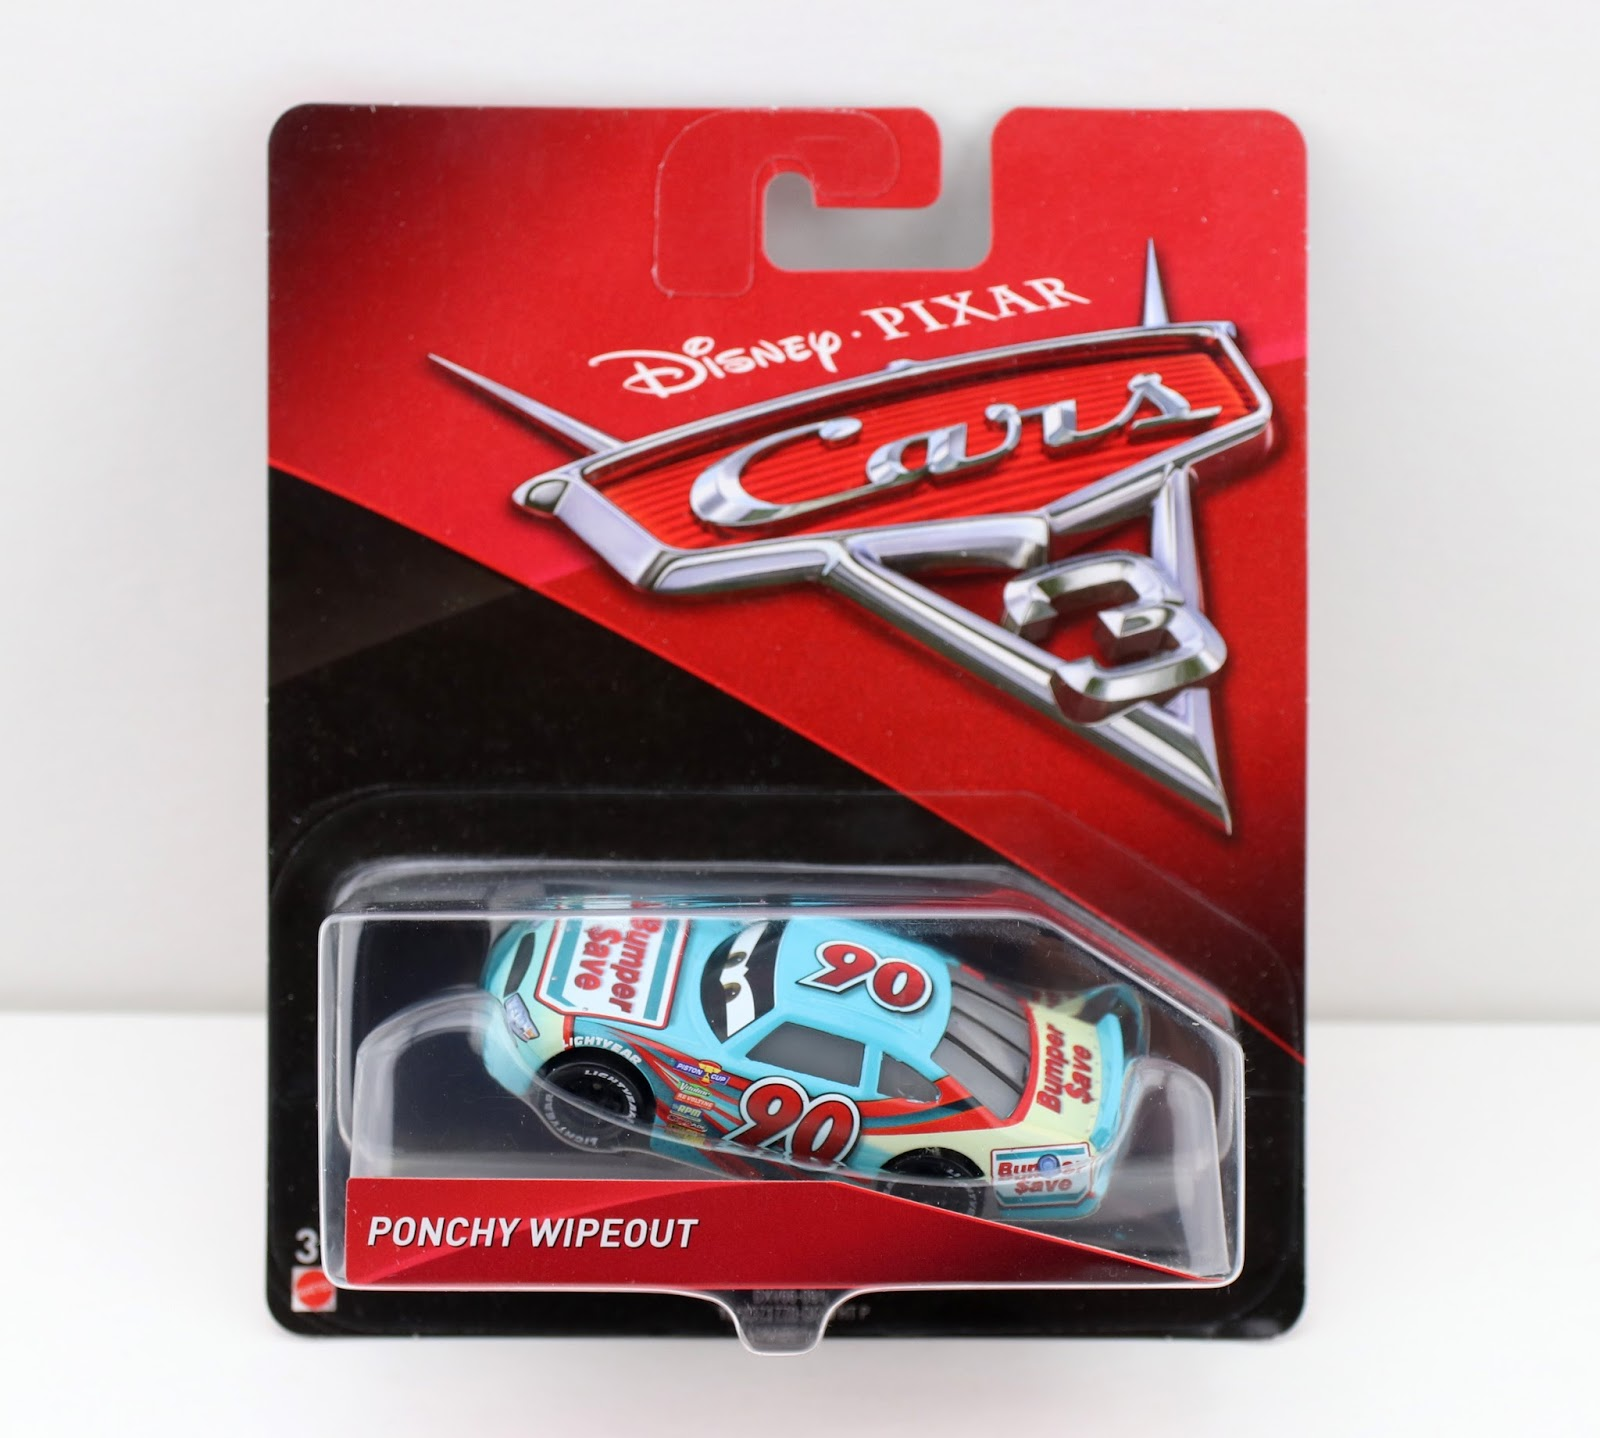 Cars 3: Ponchy Wipeout (Bumper Save) mattel diecast